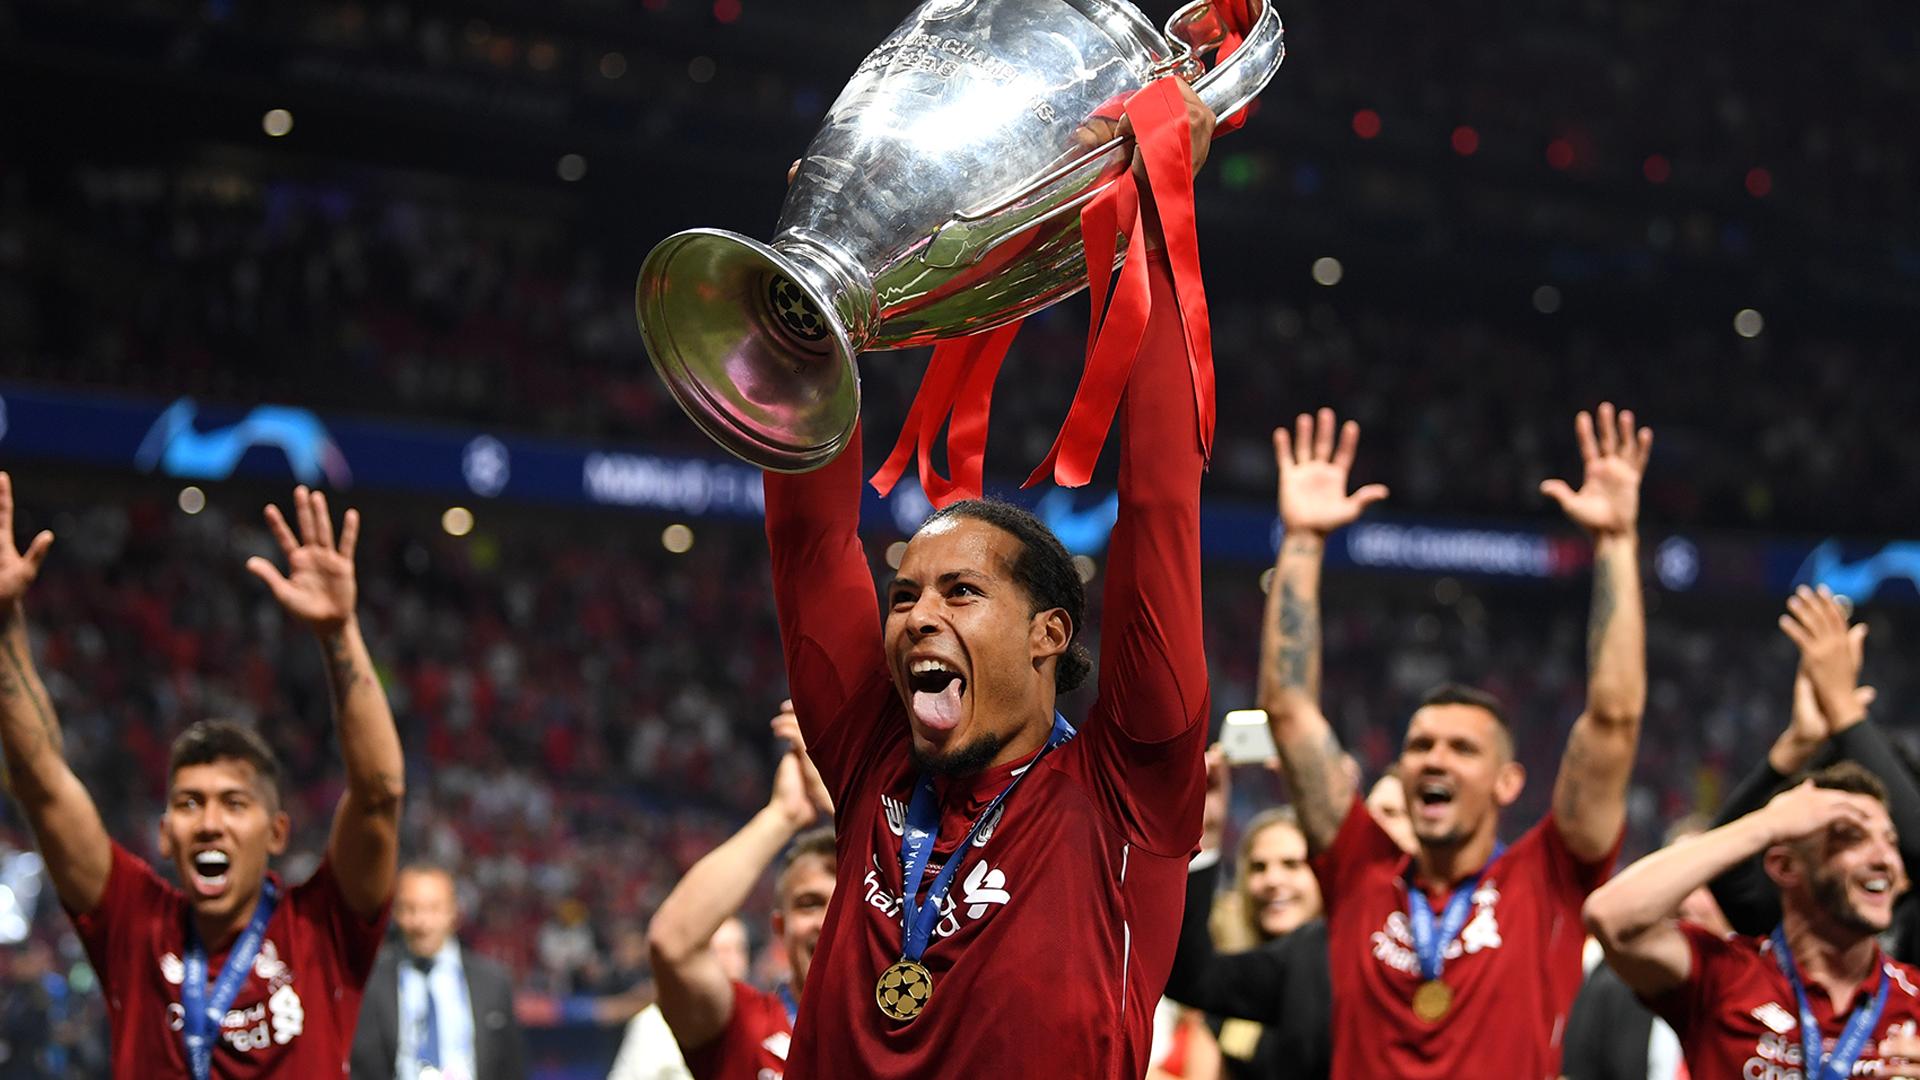 'This could be his moment' – Van Dijk backed for Ballon d'Or by ex-Netherlands international Melchiot